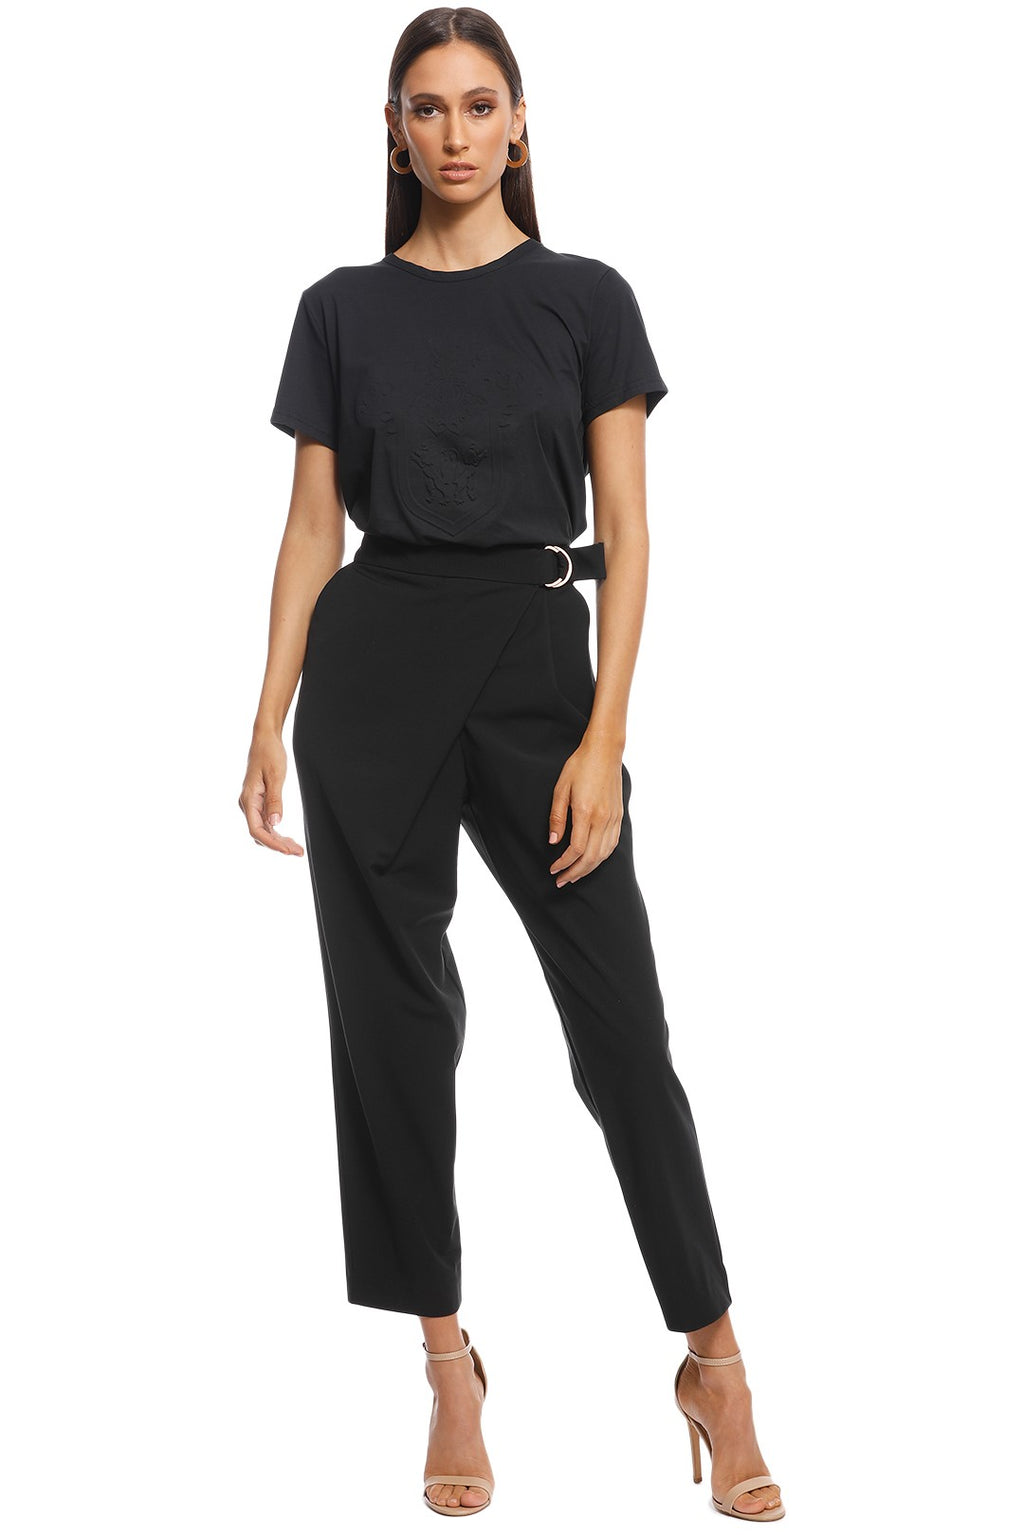 Ginger & Smart Absence Pant in Black